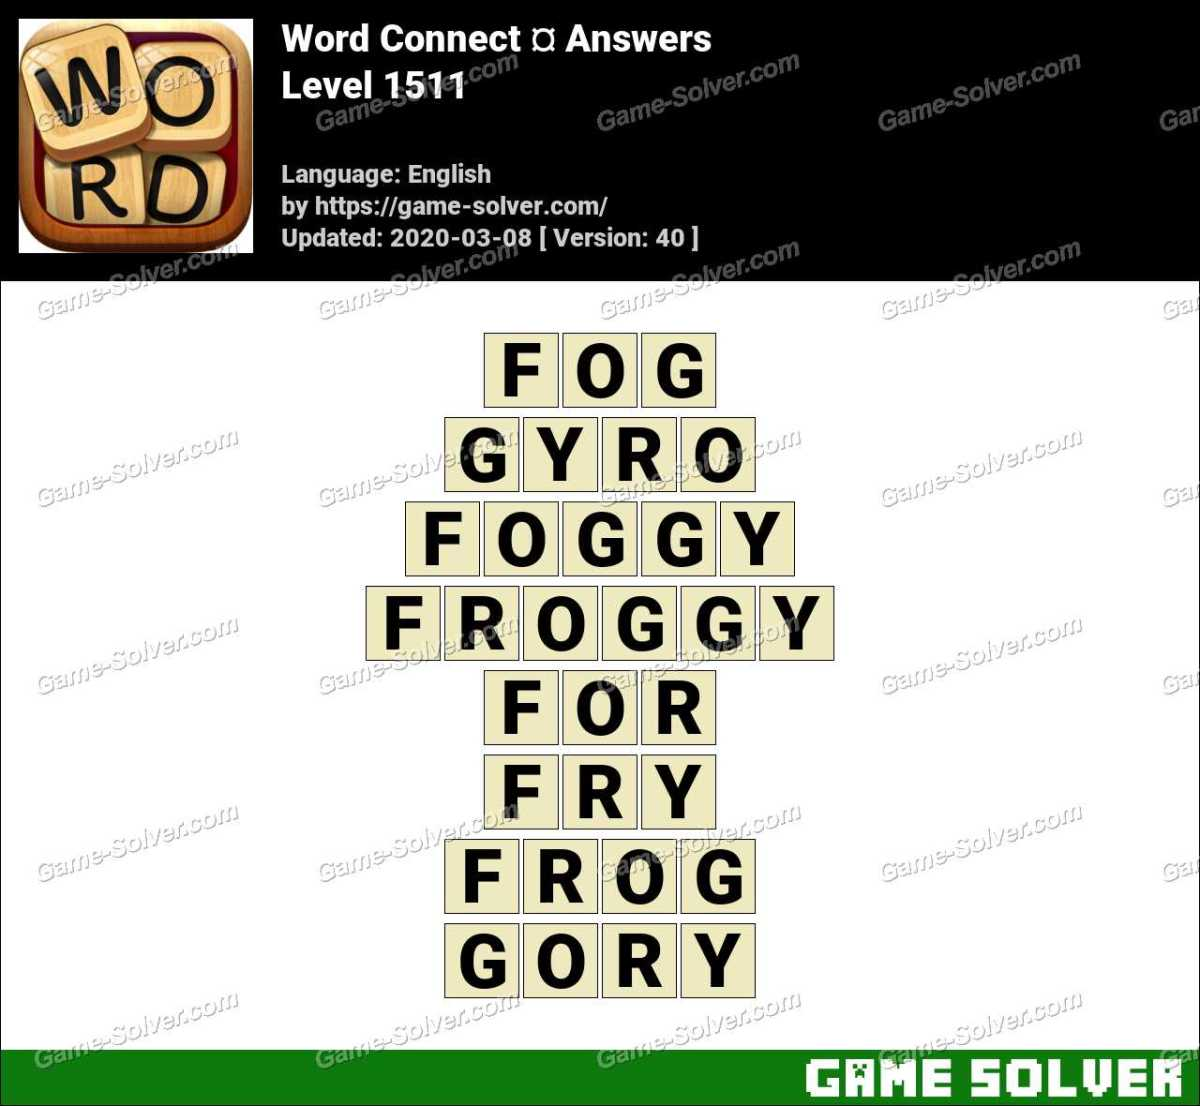 Word Connect Level 1511 Answers